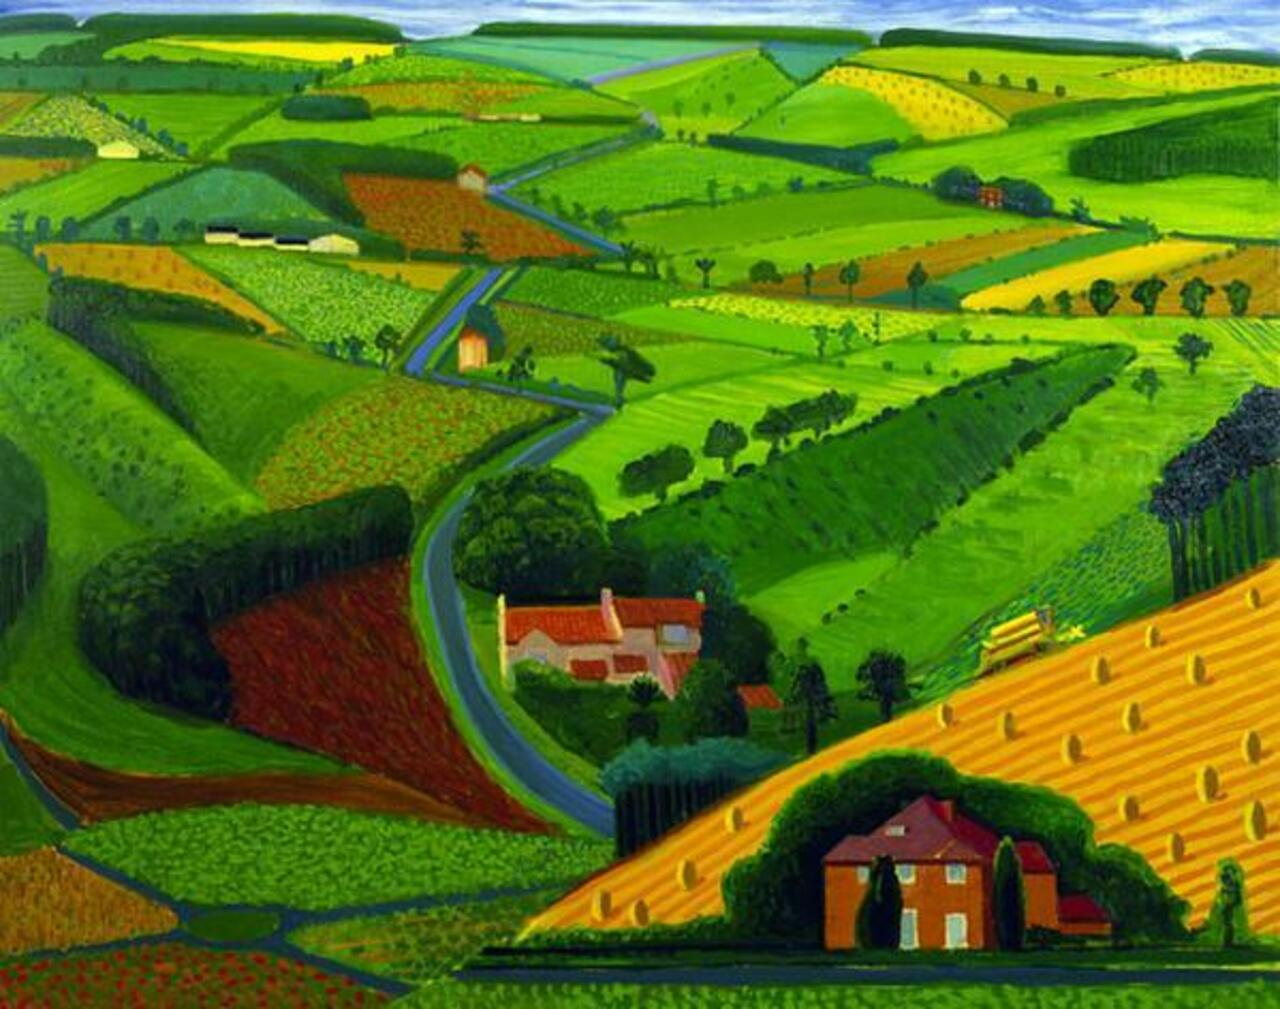 "RT @panoround01: DAVID #HOCKNEY ""The Road Across the Wolds"" (1997)  #art #green #nature #iloveart #painting  #spring #colores #colors http://t.co/y7FDKjLpYp"